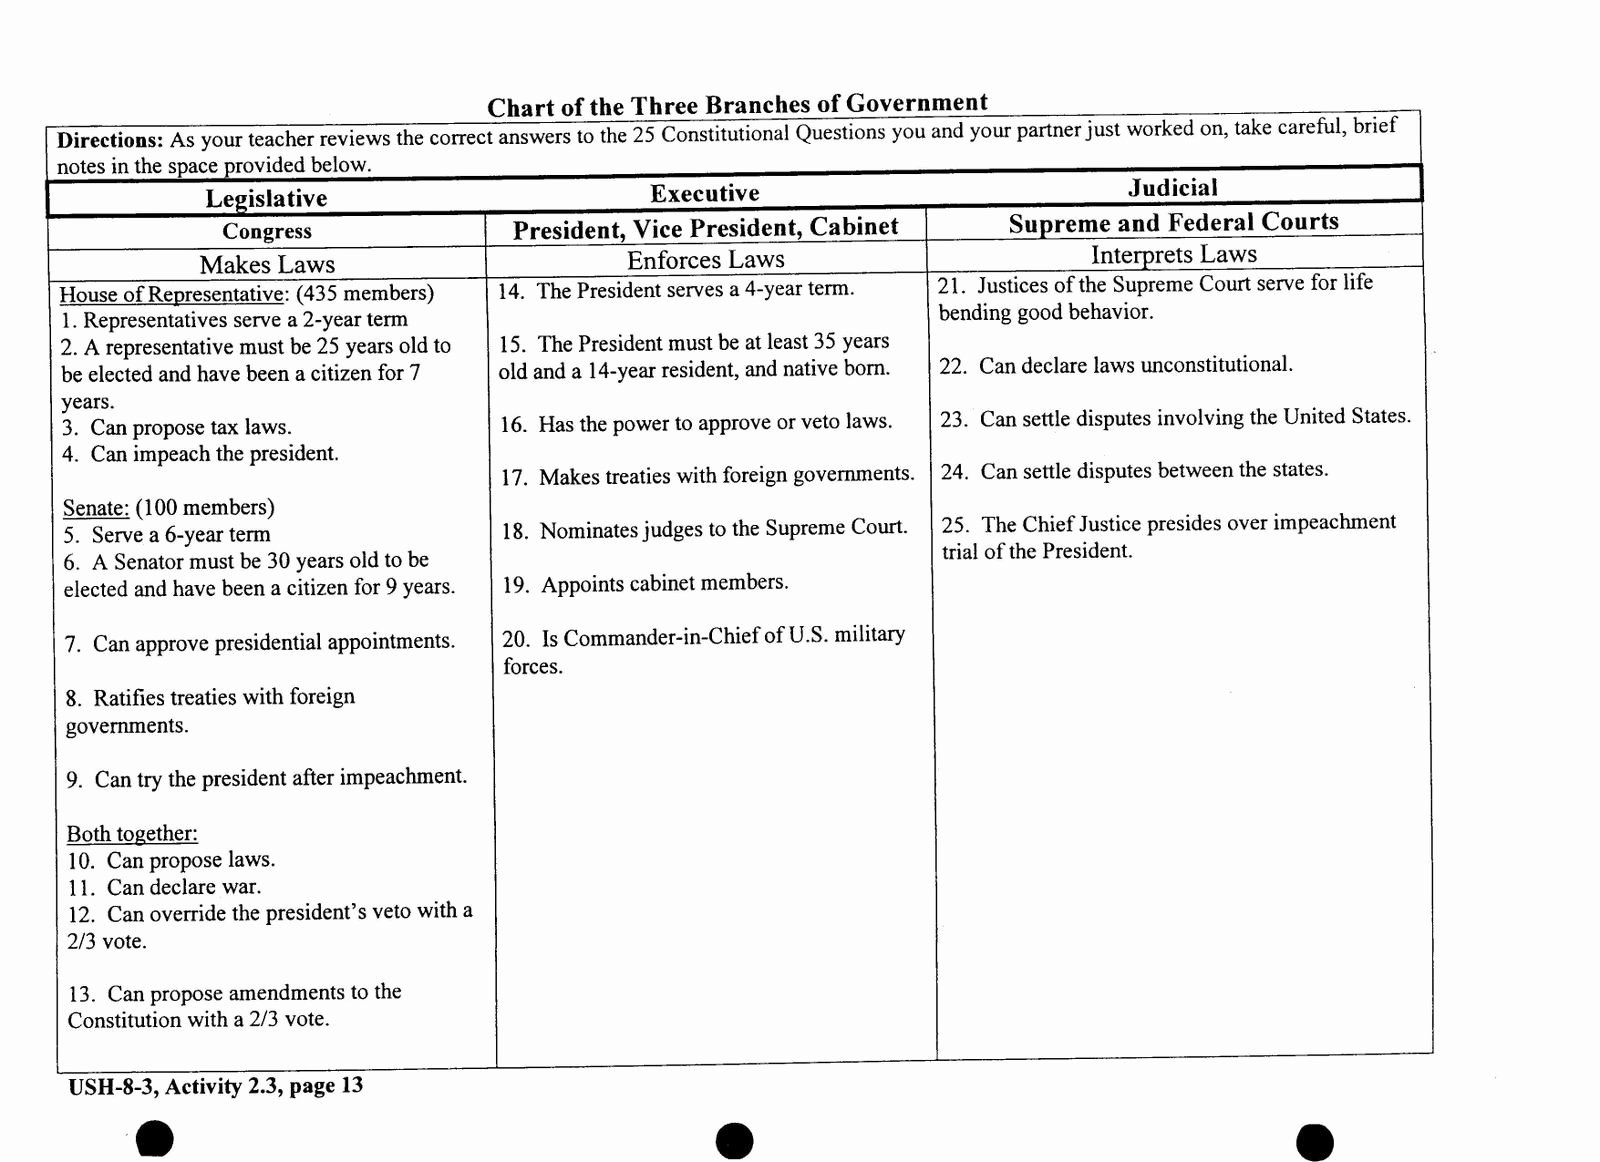 Branches Of Government Worksheet Elegant Three Branches Of Government Worksheet